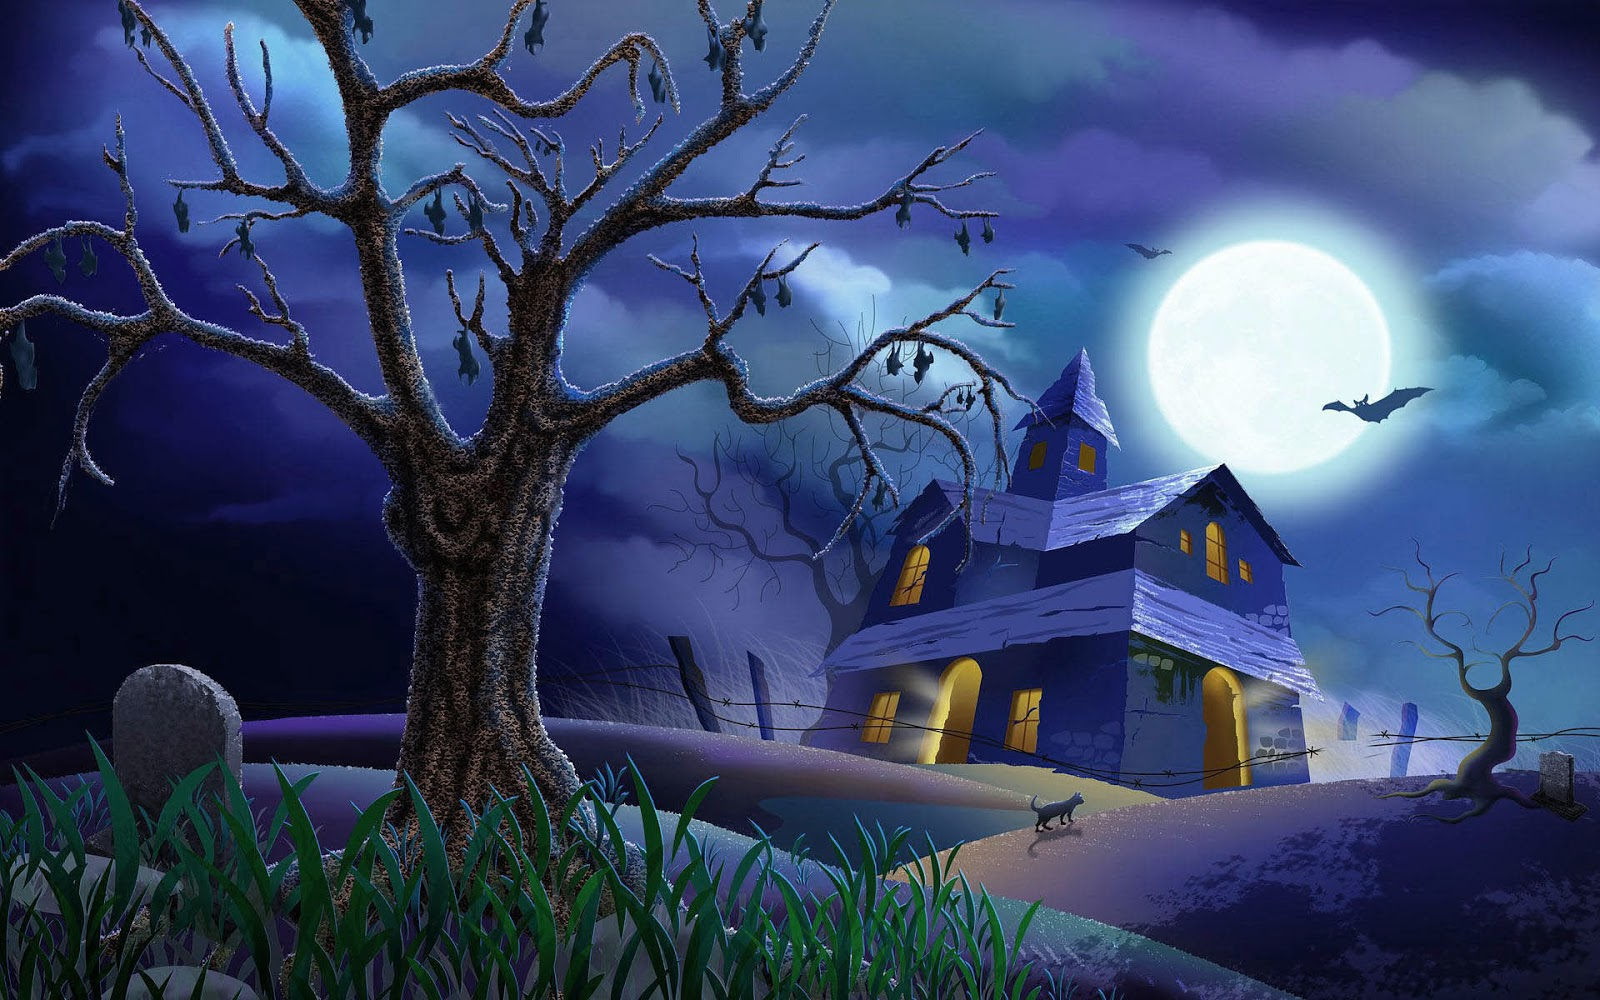 wallpaper 3d Halloween Wallpaper For Mac 1600x1000